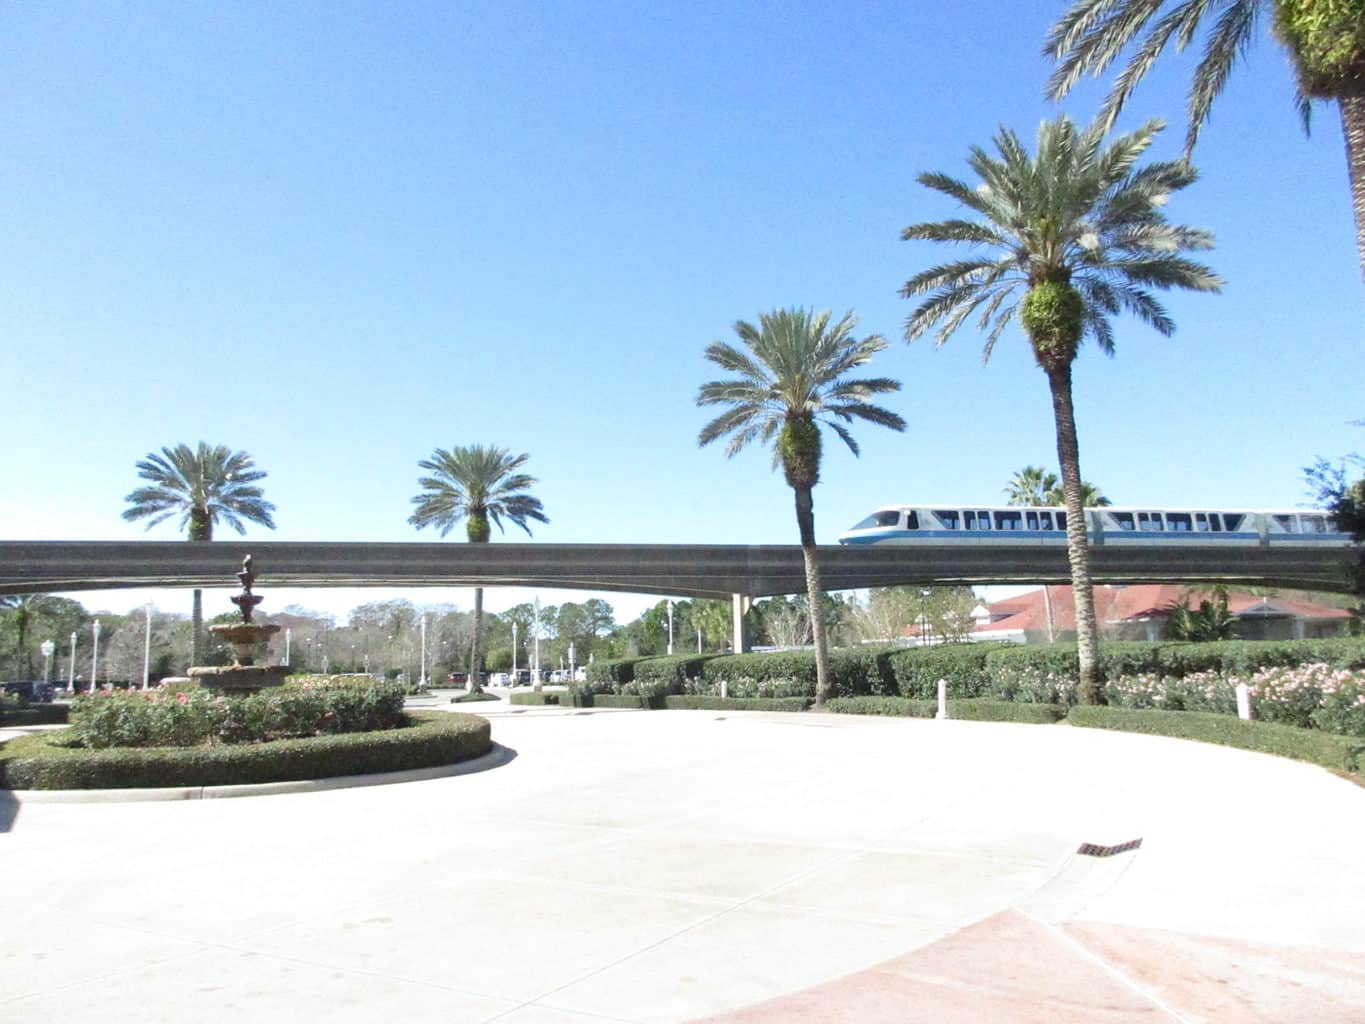 disney without tickets, monorail resort hopping